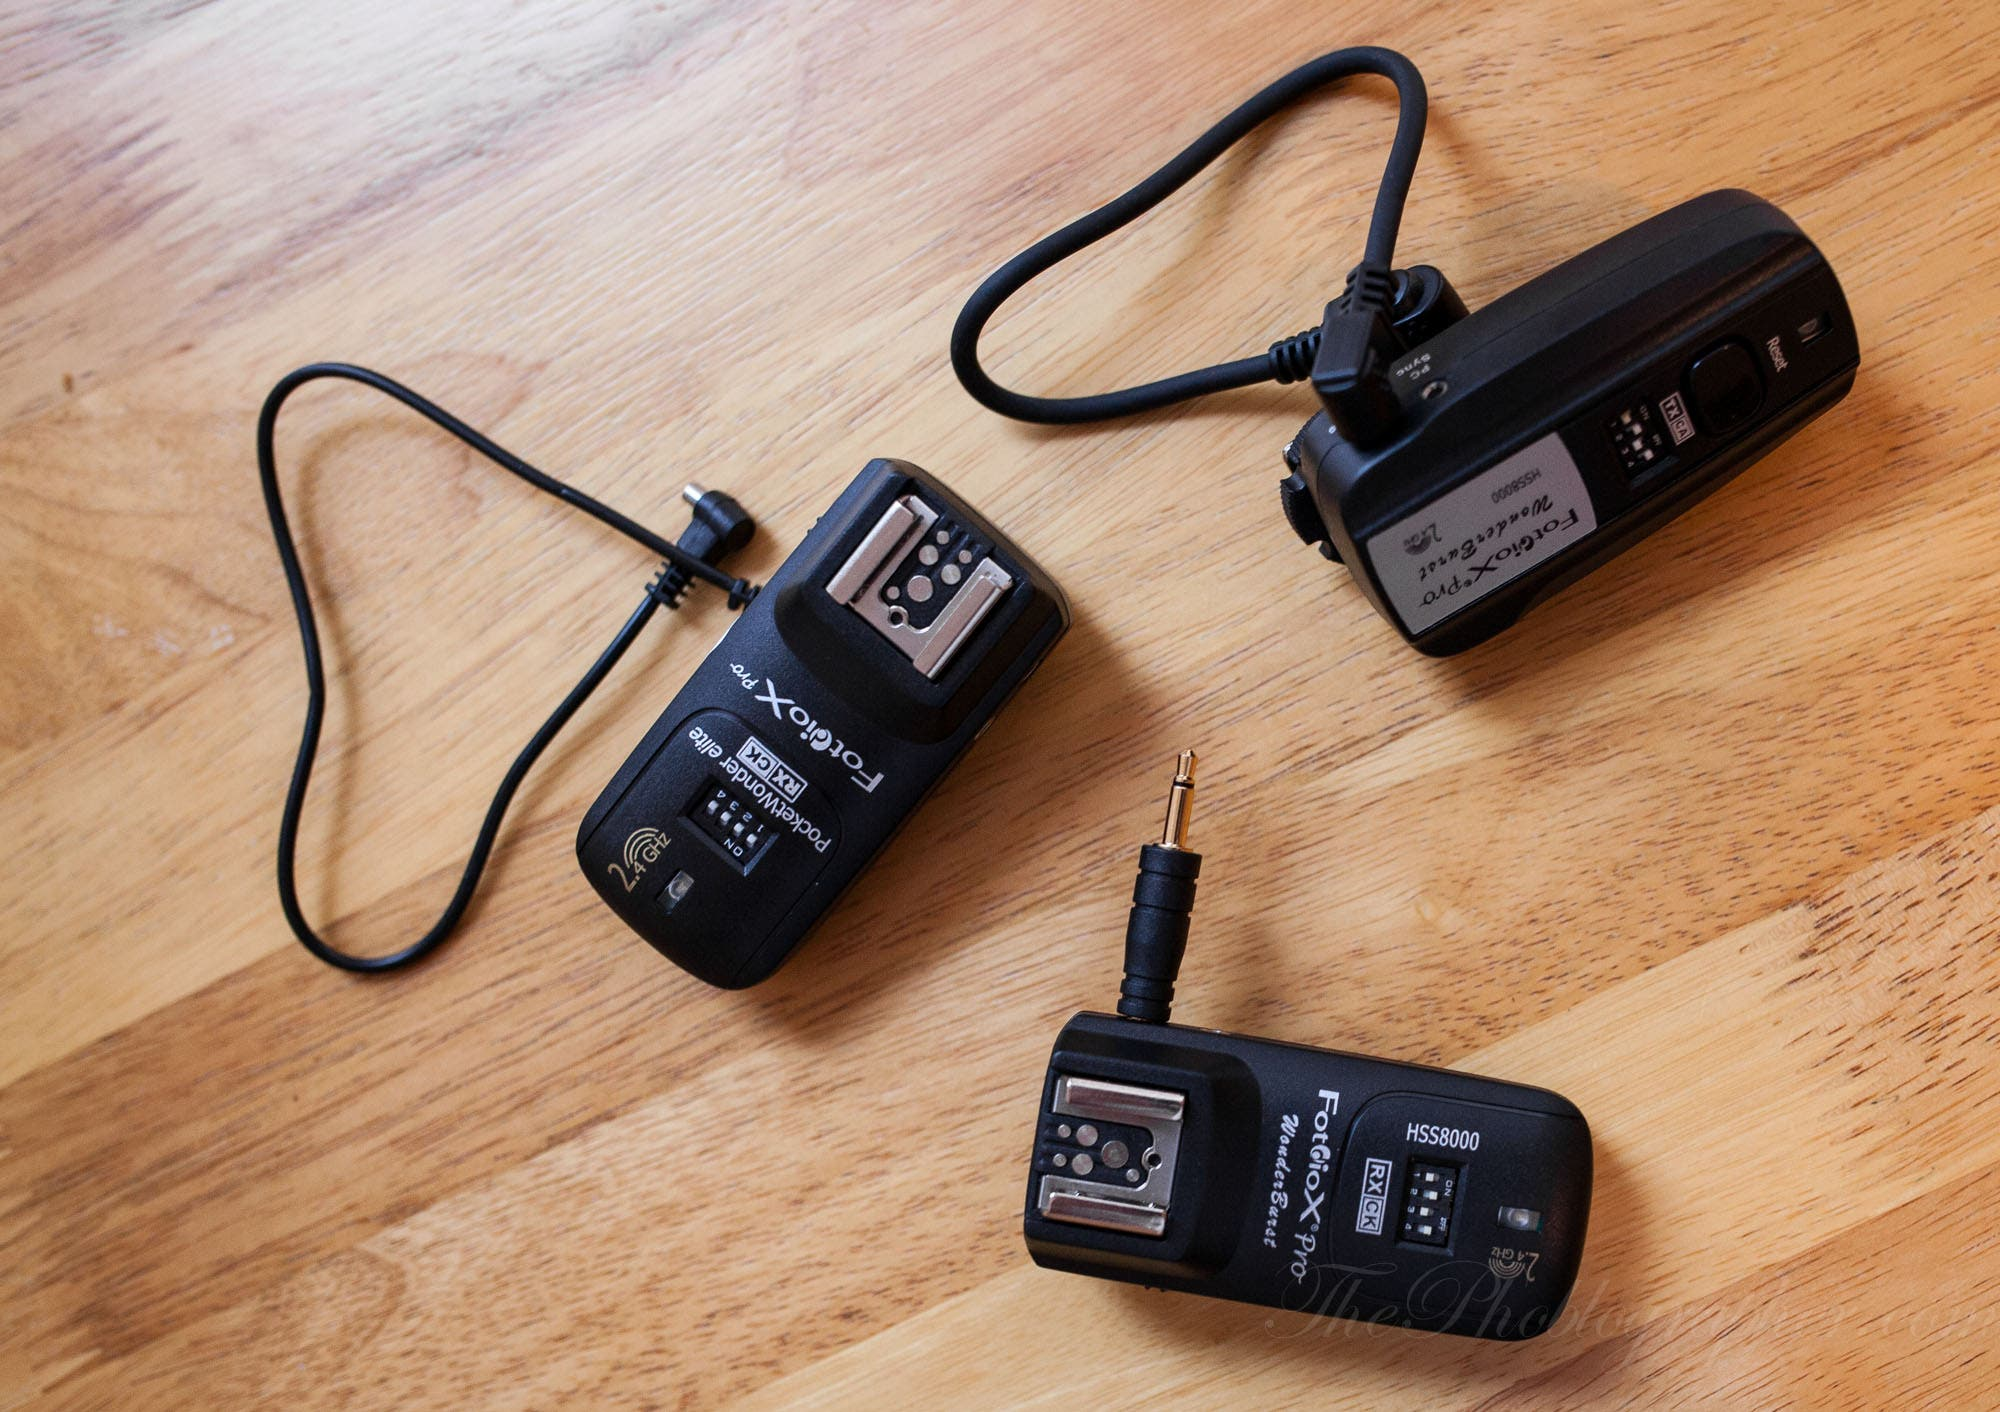 Fotodiox Issues Notice on Their WonderBurst HSS8000 Radio Triggers